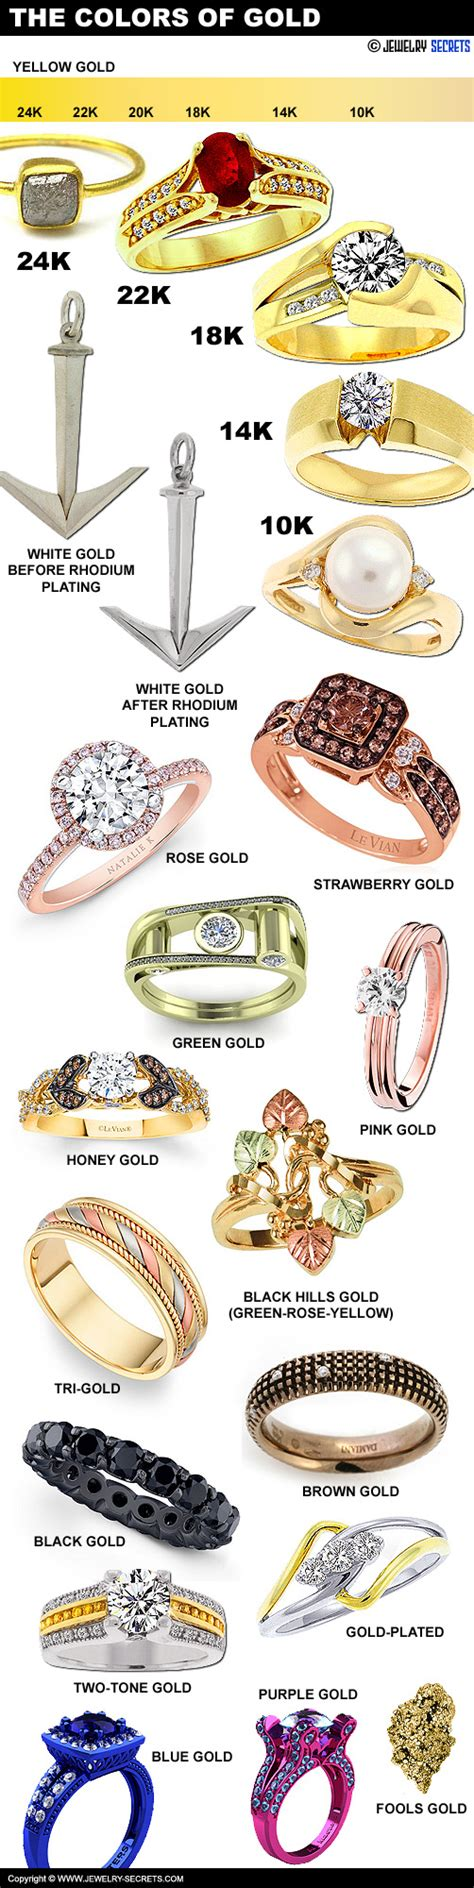 different colors of different colors of gold jewelry secrets